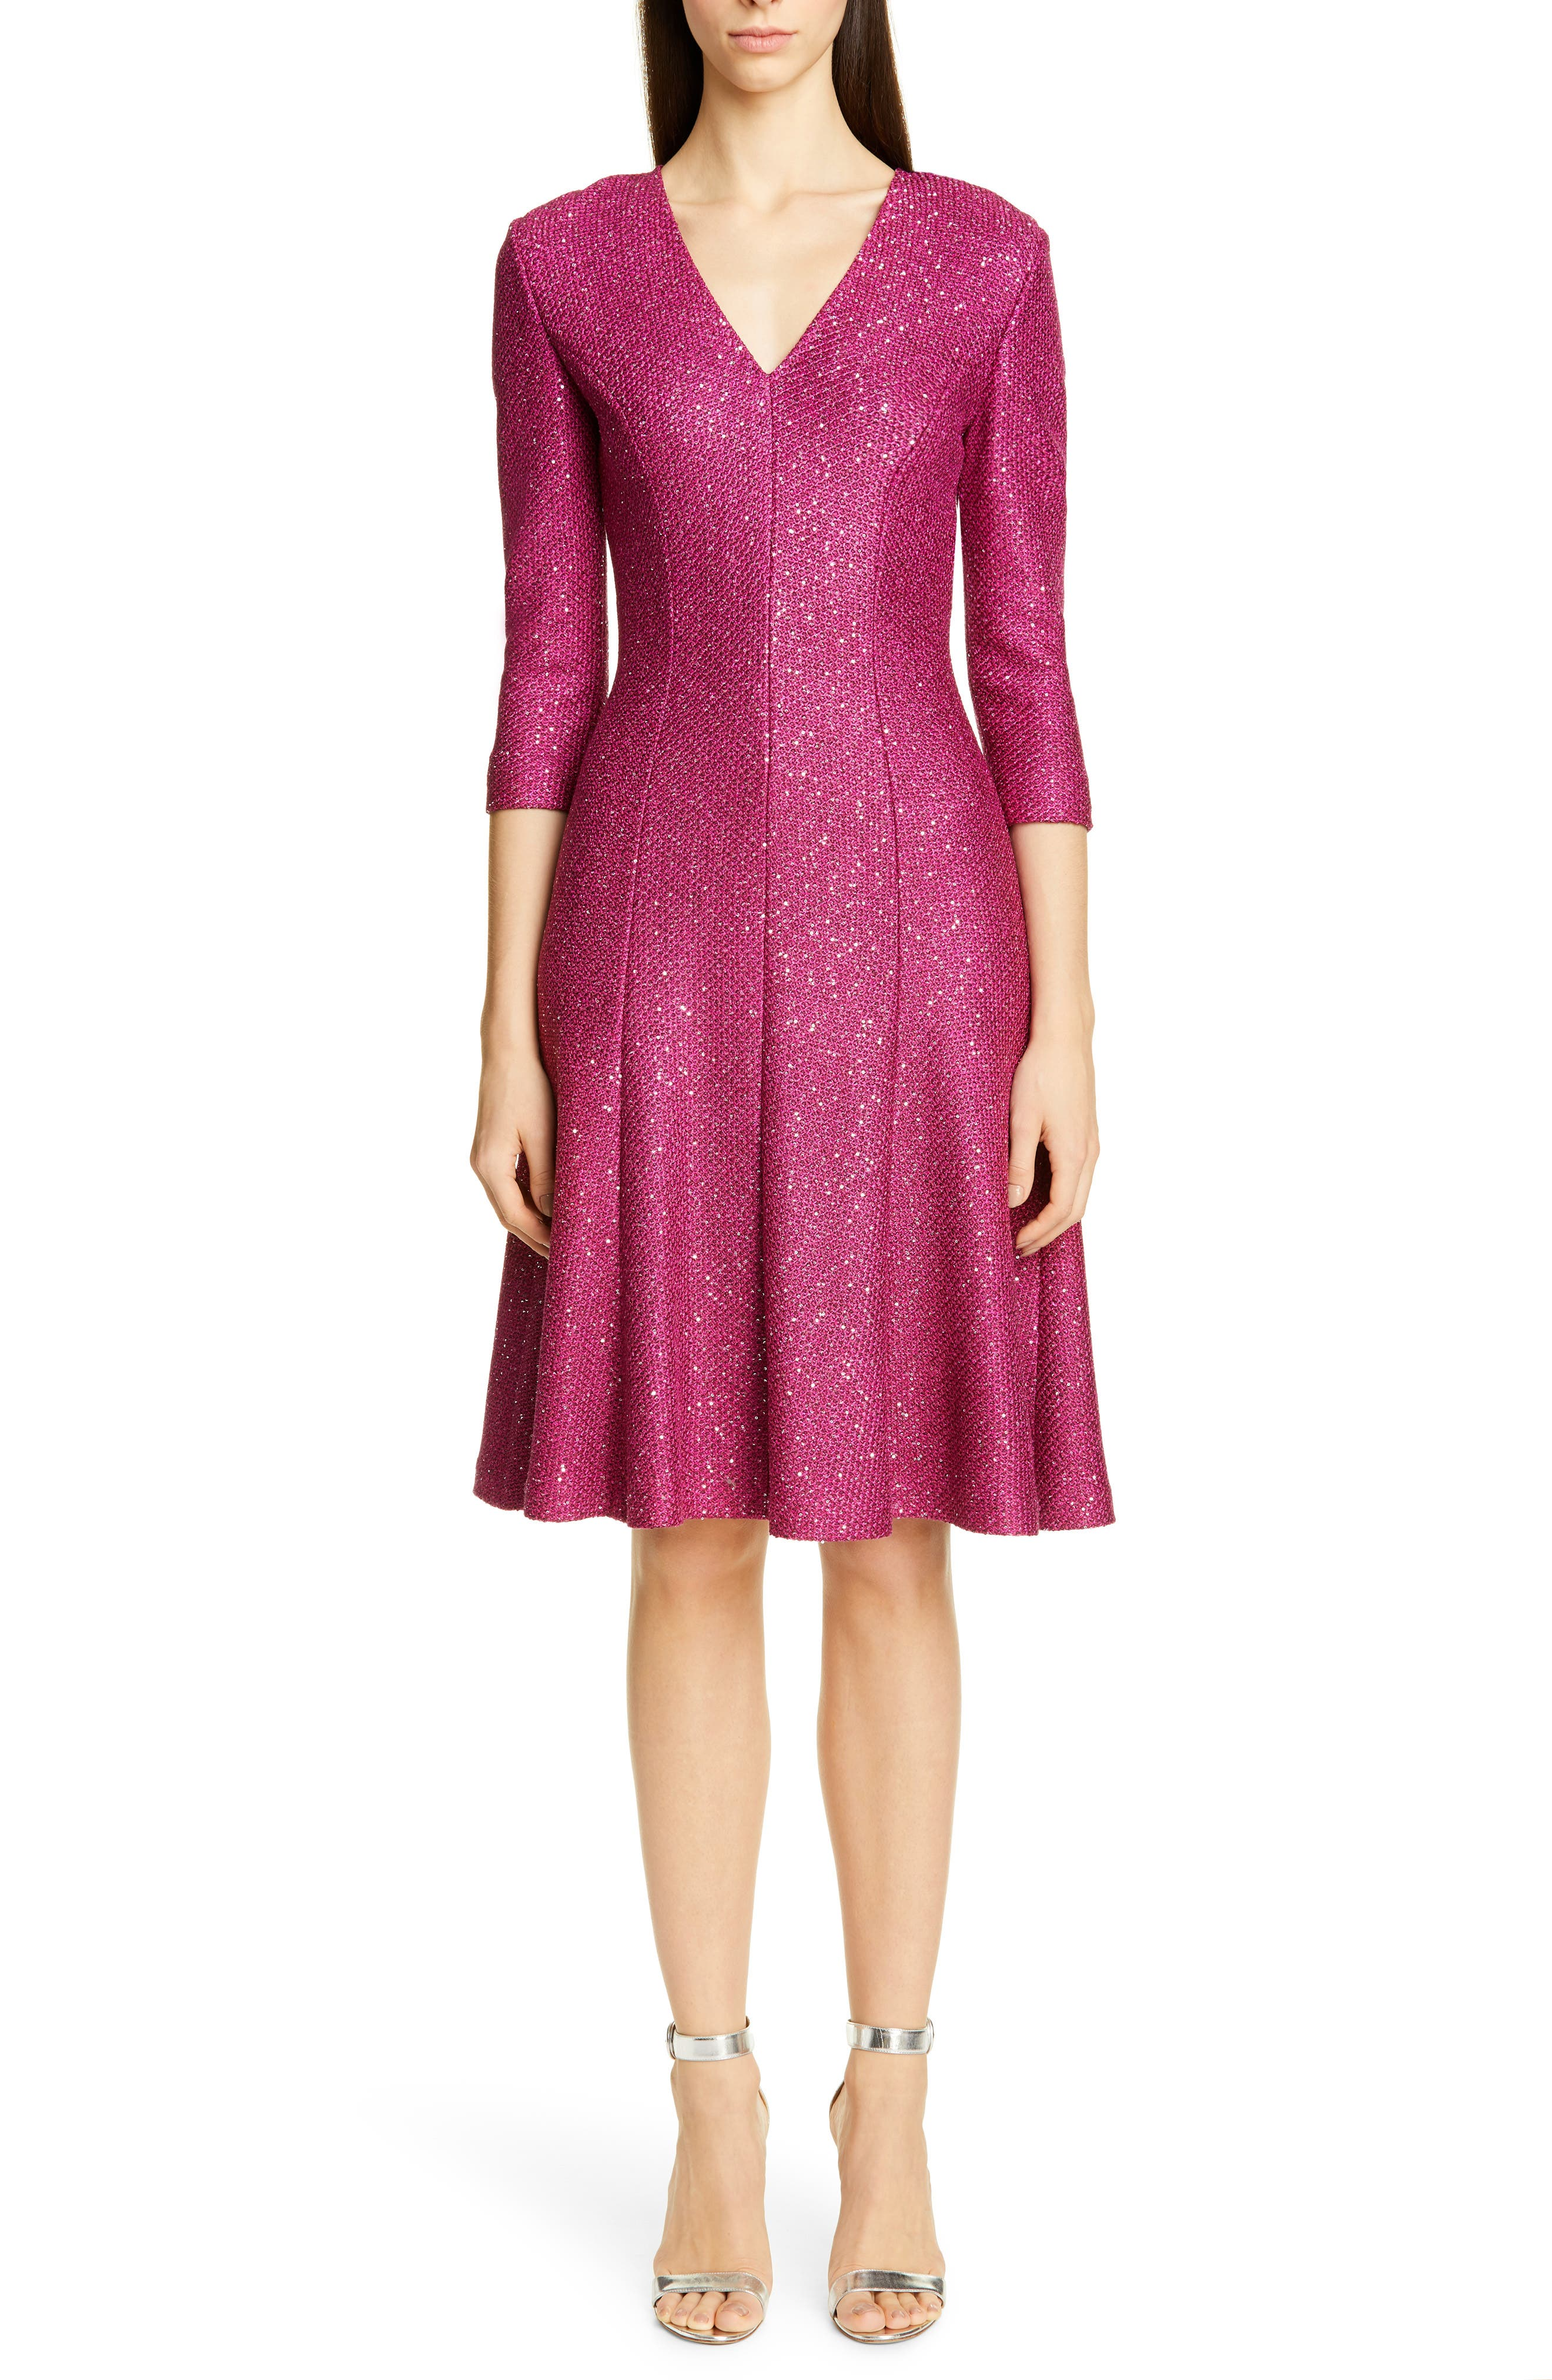 St. John Collection Luxe Sequin Tuck Knit Fit & Flare Dress, Pink